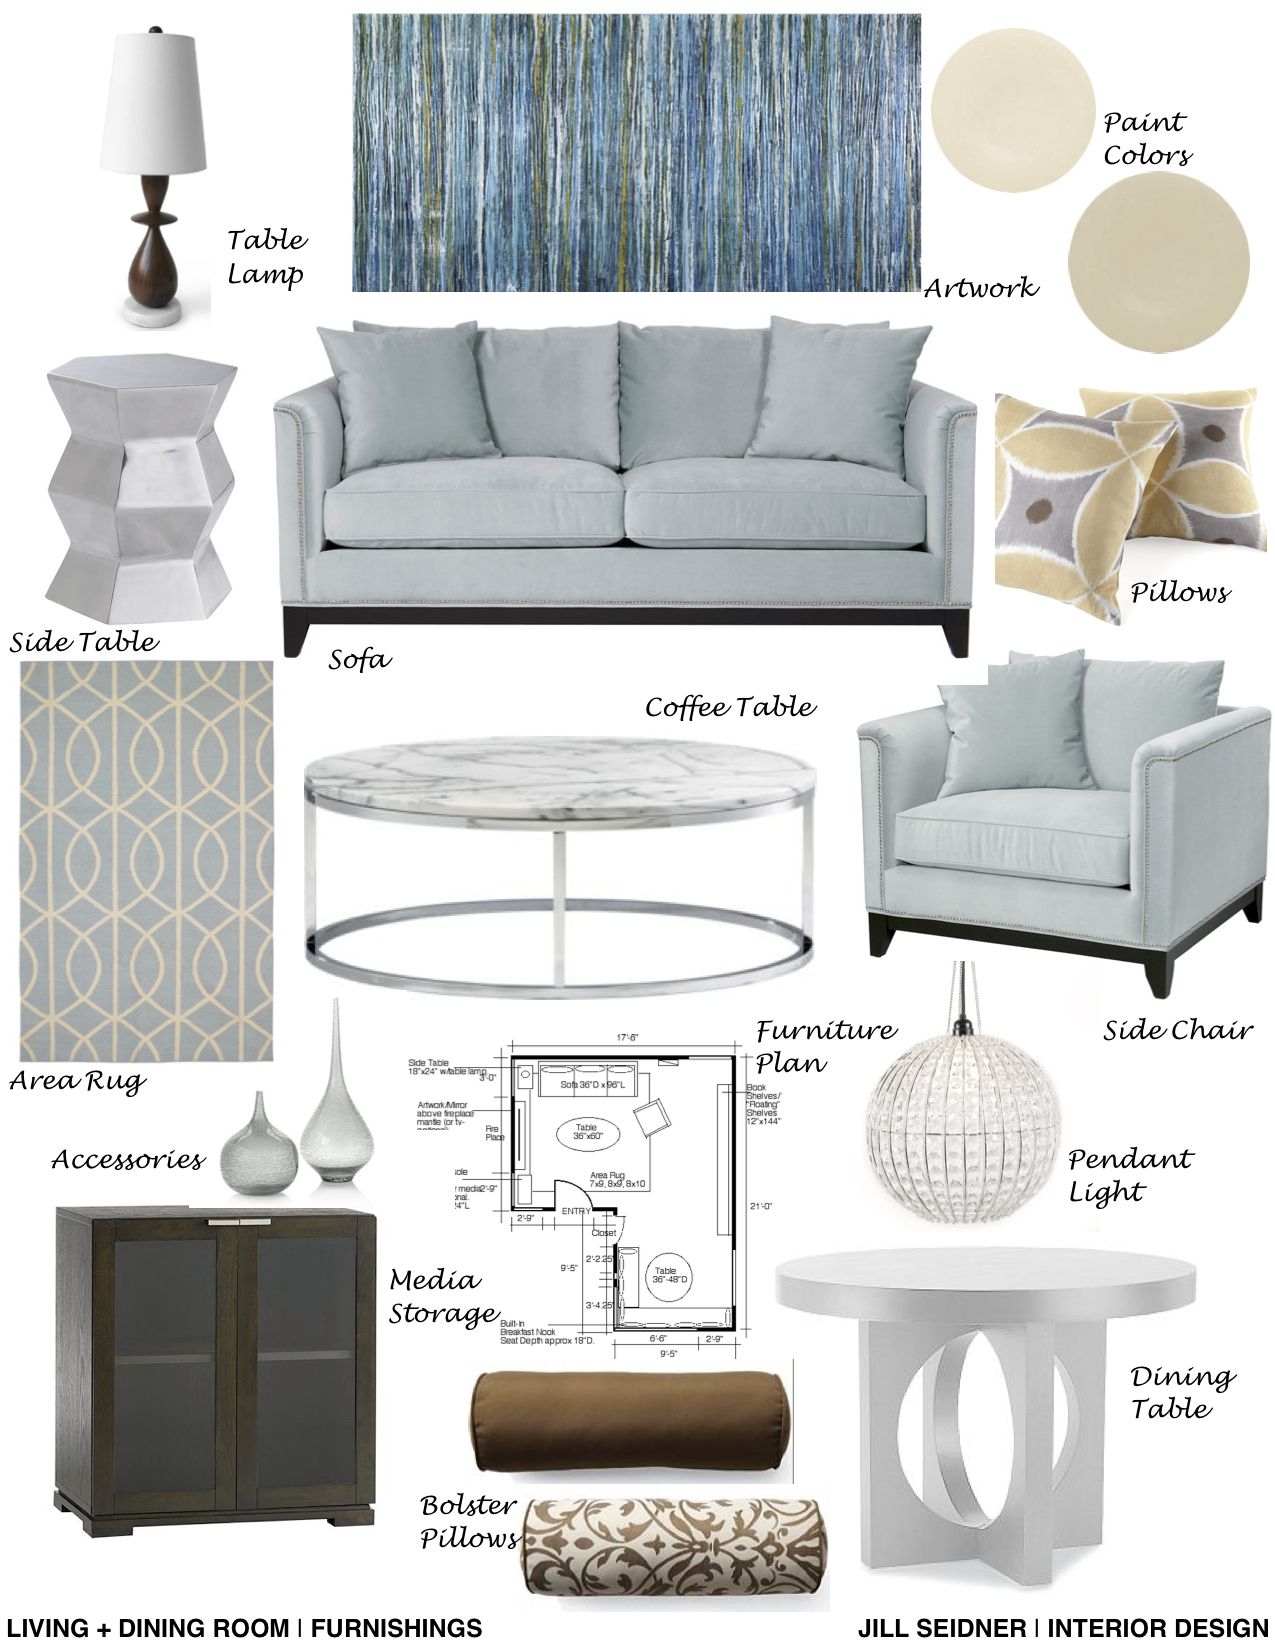 Marvelous Living Room Furnishings Concept Board. Interior Design ServicesModern ... Part 6